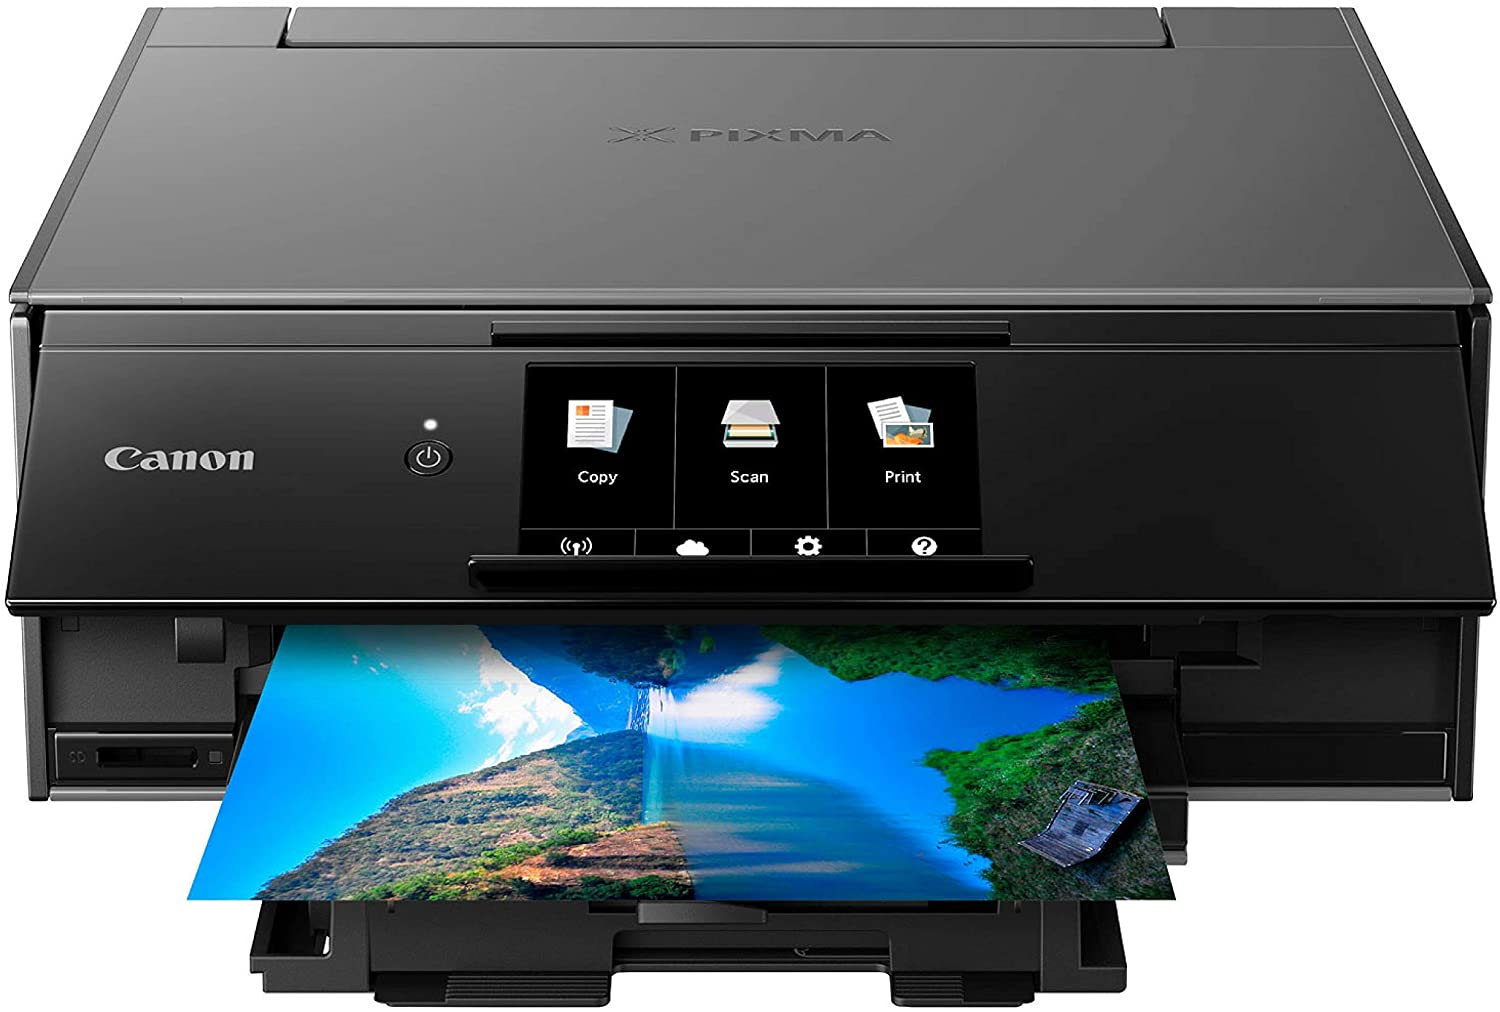 Canon TS9120 Wireless All-in-One Printer with Scanner and Copier